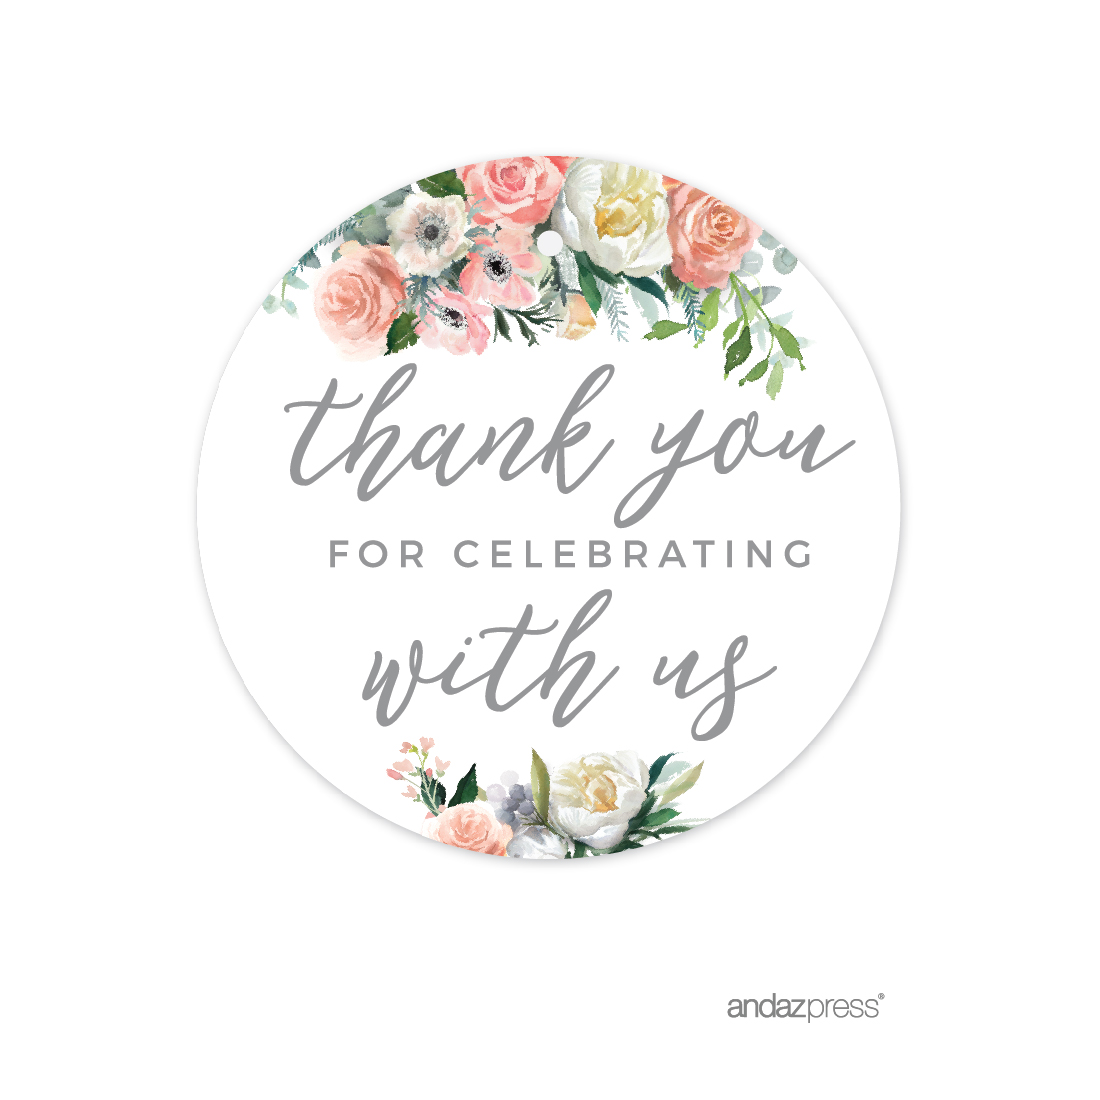 Peach Coral Floral Garden Party, Round Circle Gift Tags, Thank You for Celebrating With Us, 24-Pack